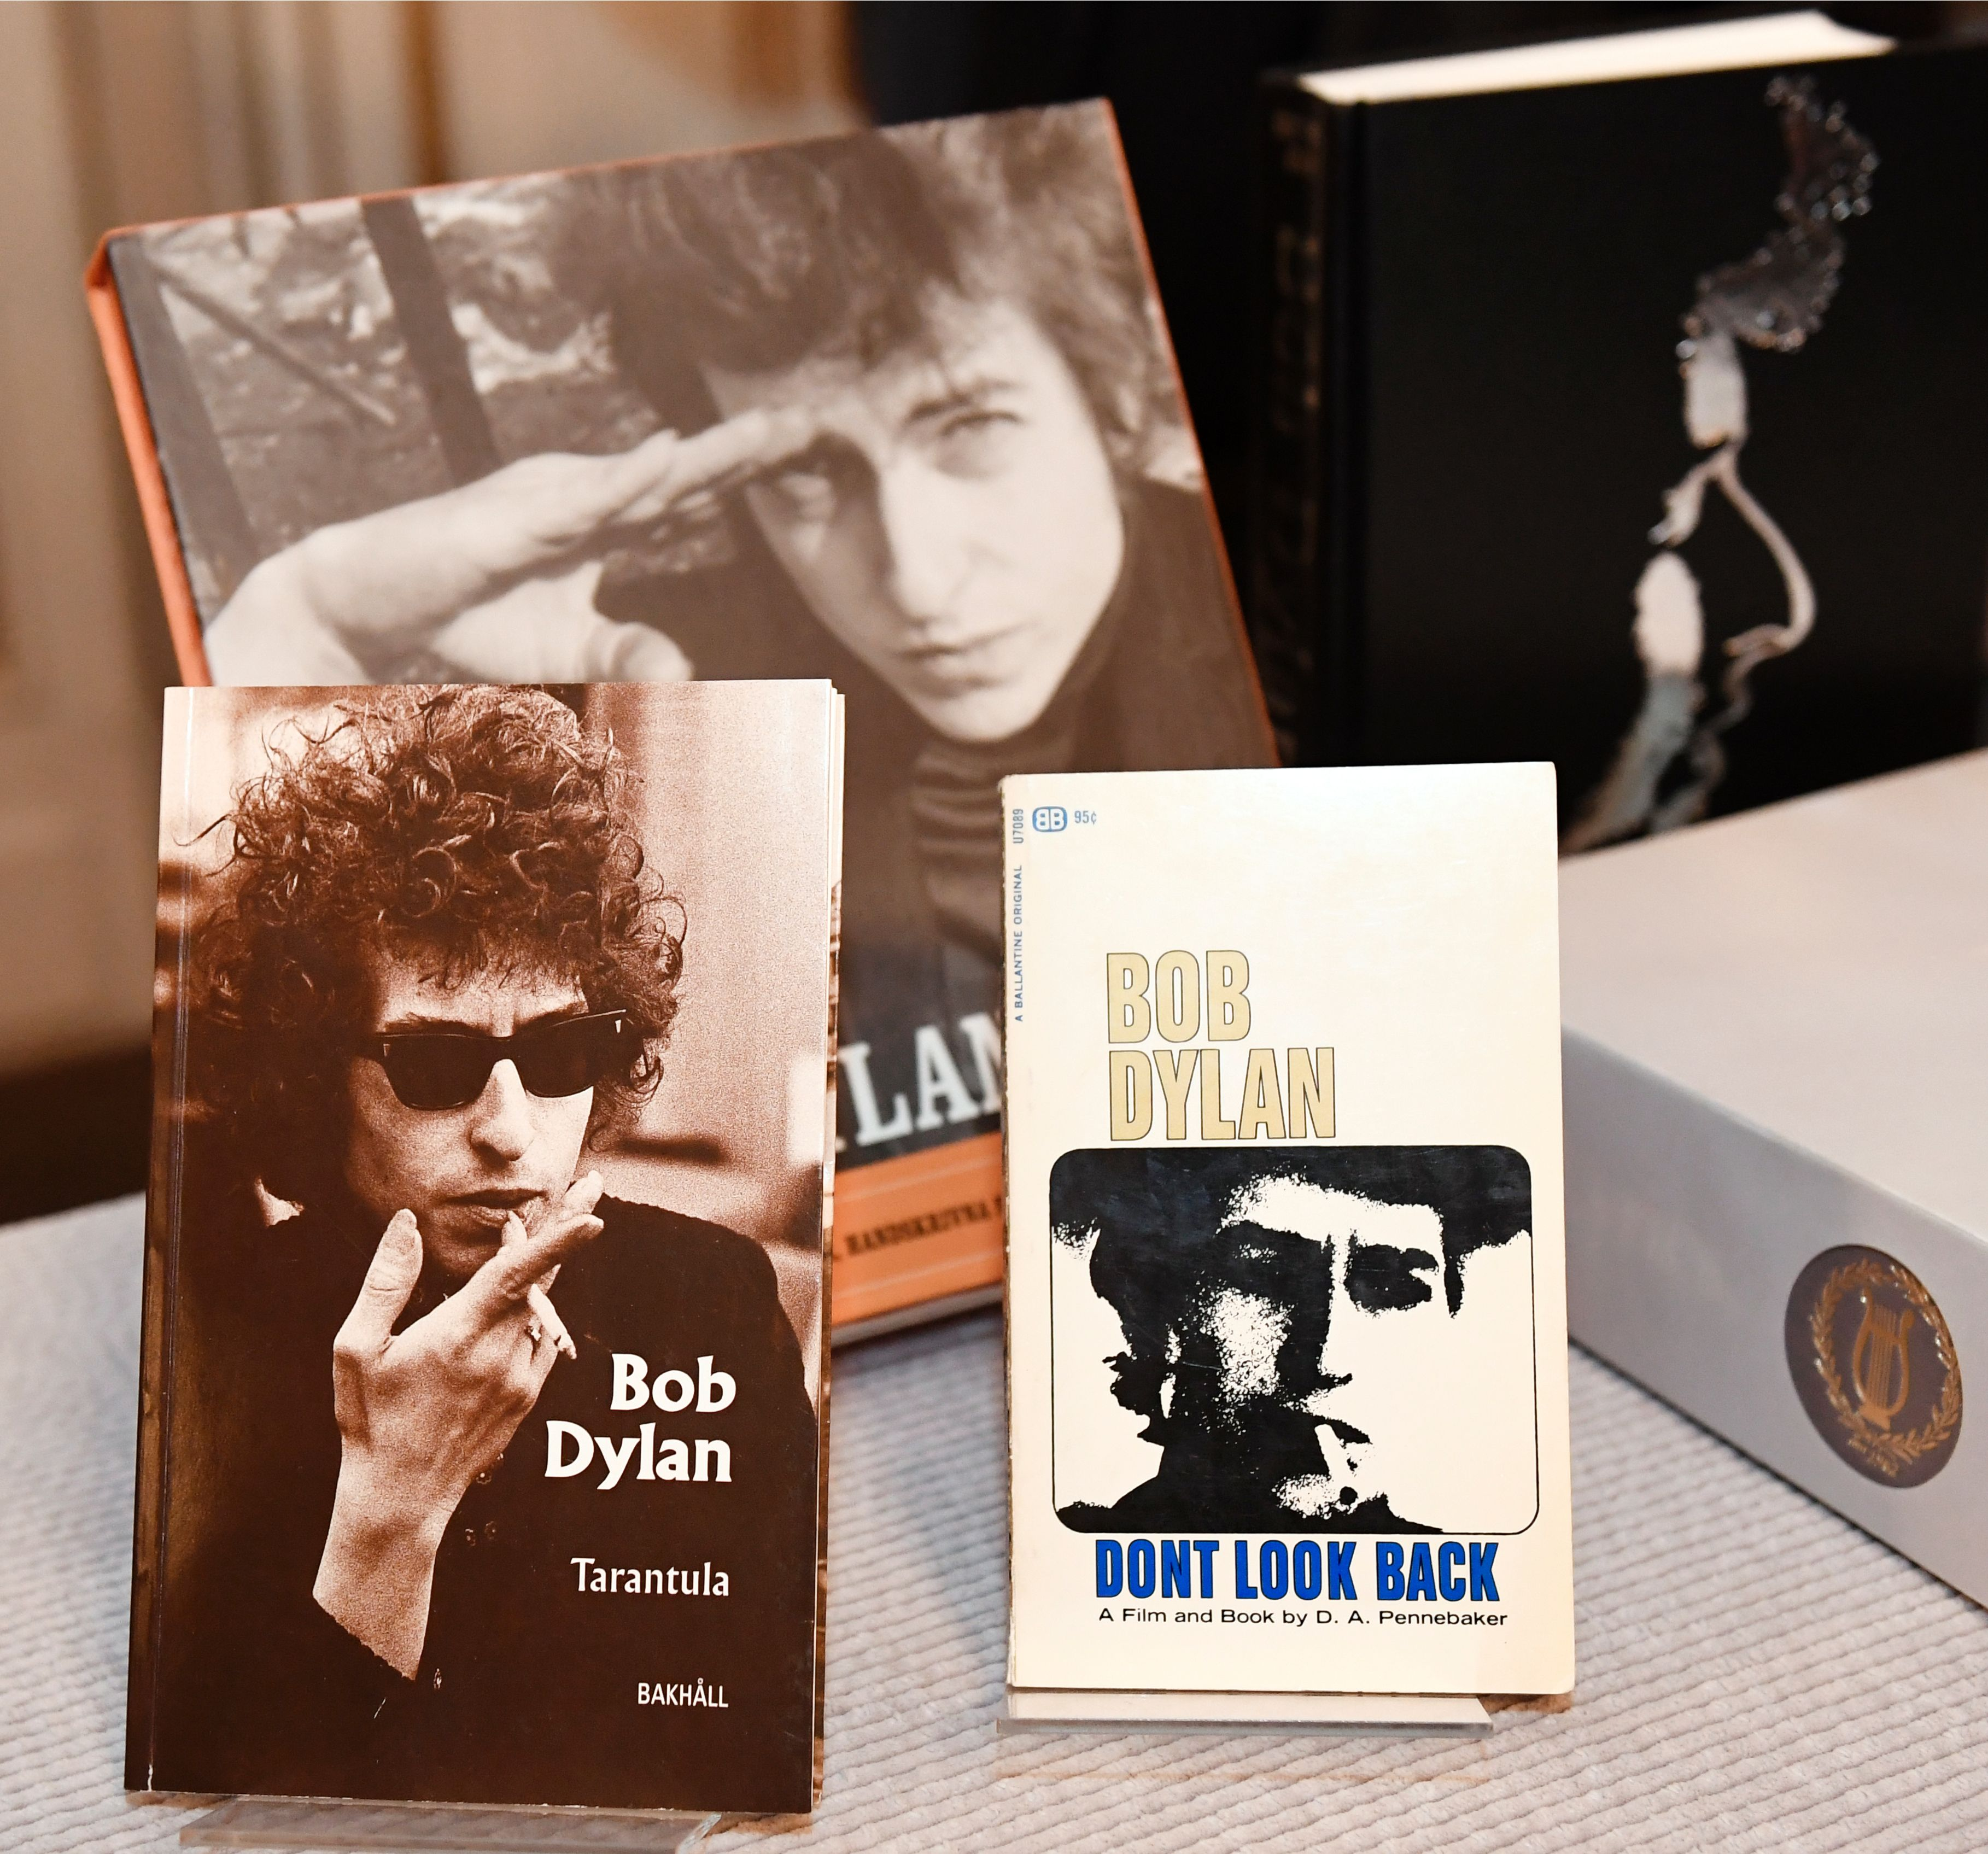 Books by and about US songwriter Bob Dylan who was announced the laureate of the 2016 Nobel Prize in Literature are displayed at the Swedish Academy in Stockholm, Sweden, on Oct. 13, 2016.